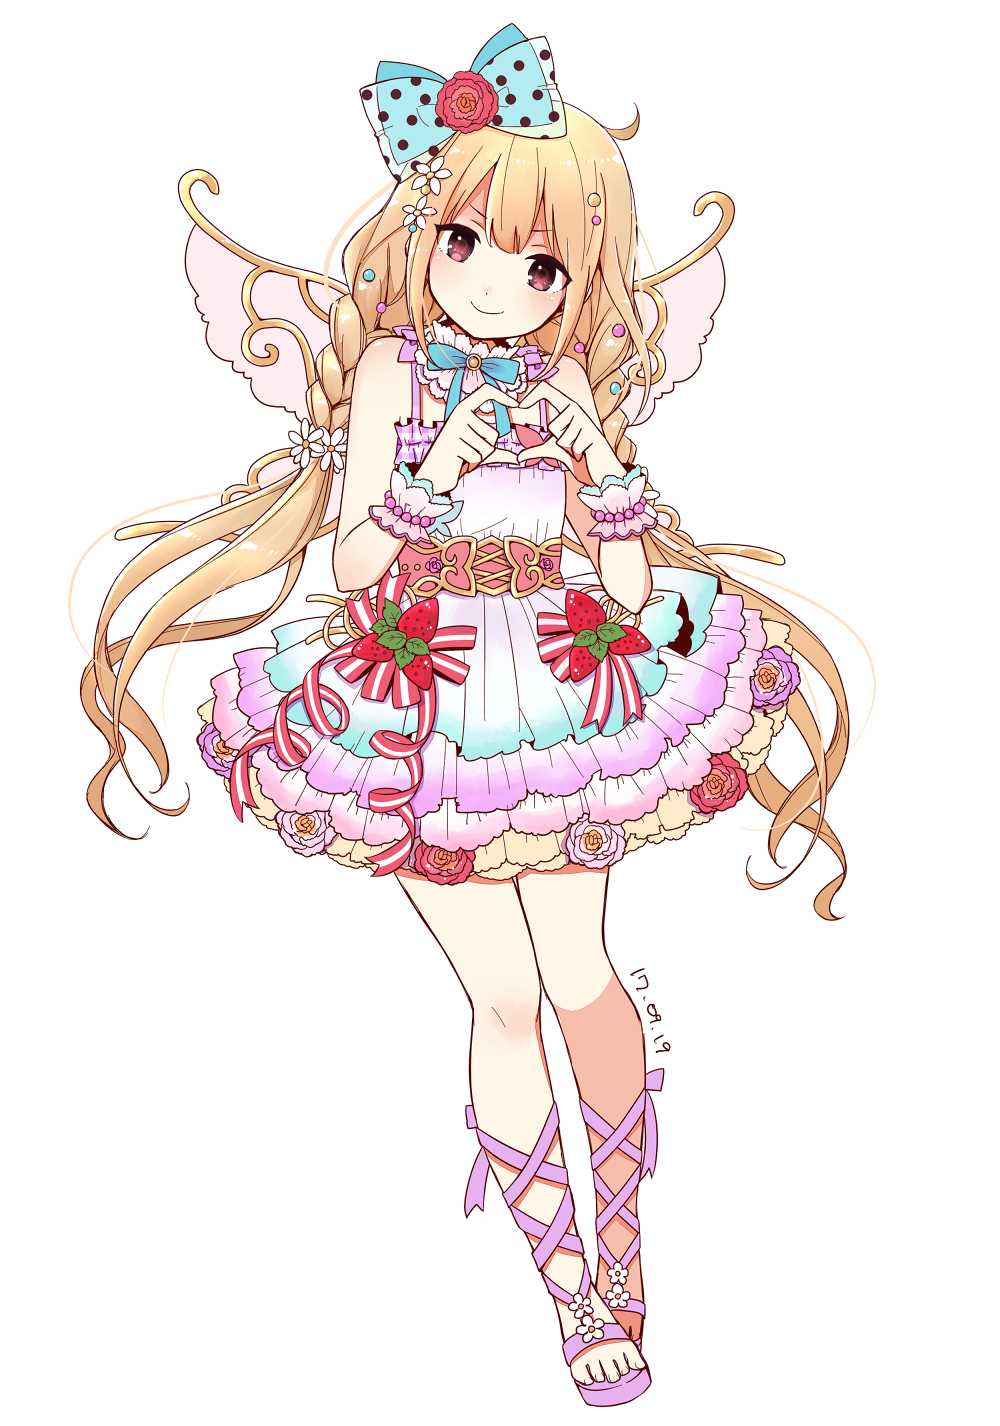 1girl ahoge bare_shoulders blonde_hair blue_bow blush bow bracelet braid brown_eyes commentary_request dated dress fairy_wings fake_wings flower flower_ornament food frilled_dress frills fruit full_body futaba_anzu hair_bow hair_flower hair_ornament heart heart_hands highres idolmaster idolmaster_cinderella_girls idolmaster_cinderella_girls_starlight_stage jewelry layered_dress long_hair looking_at_viewer neck_ribbon pearl_bracelet polka_dot polka_dot_bow ribbon saki_(pixy0911) sandals simple_background smile solo spaghetti_strap standing strawberry striped striped_ribbon transparent_bow twintails v-shaped_eyebrows very_long_hair white_background wings wrist_cuffs